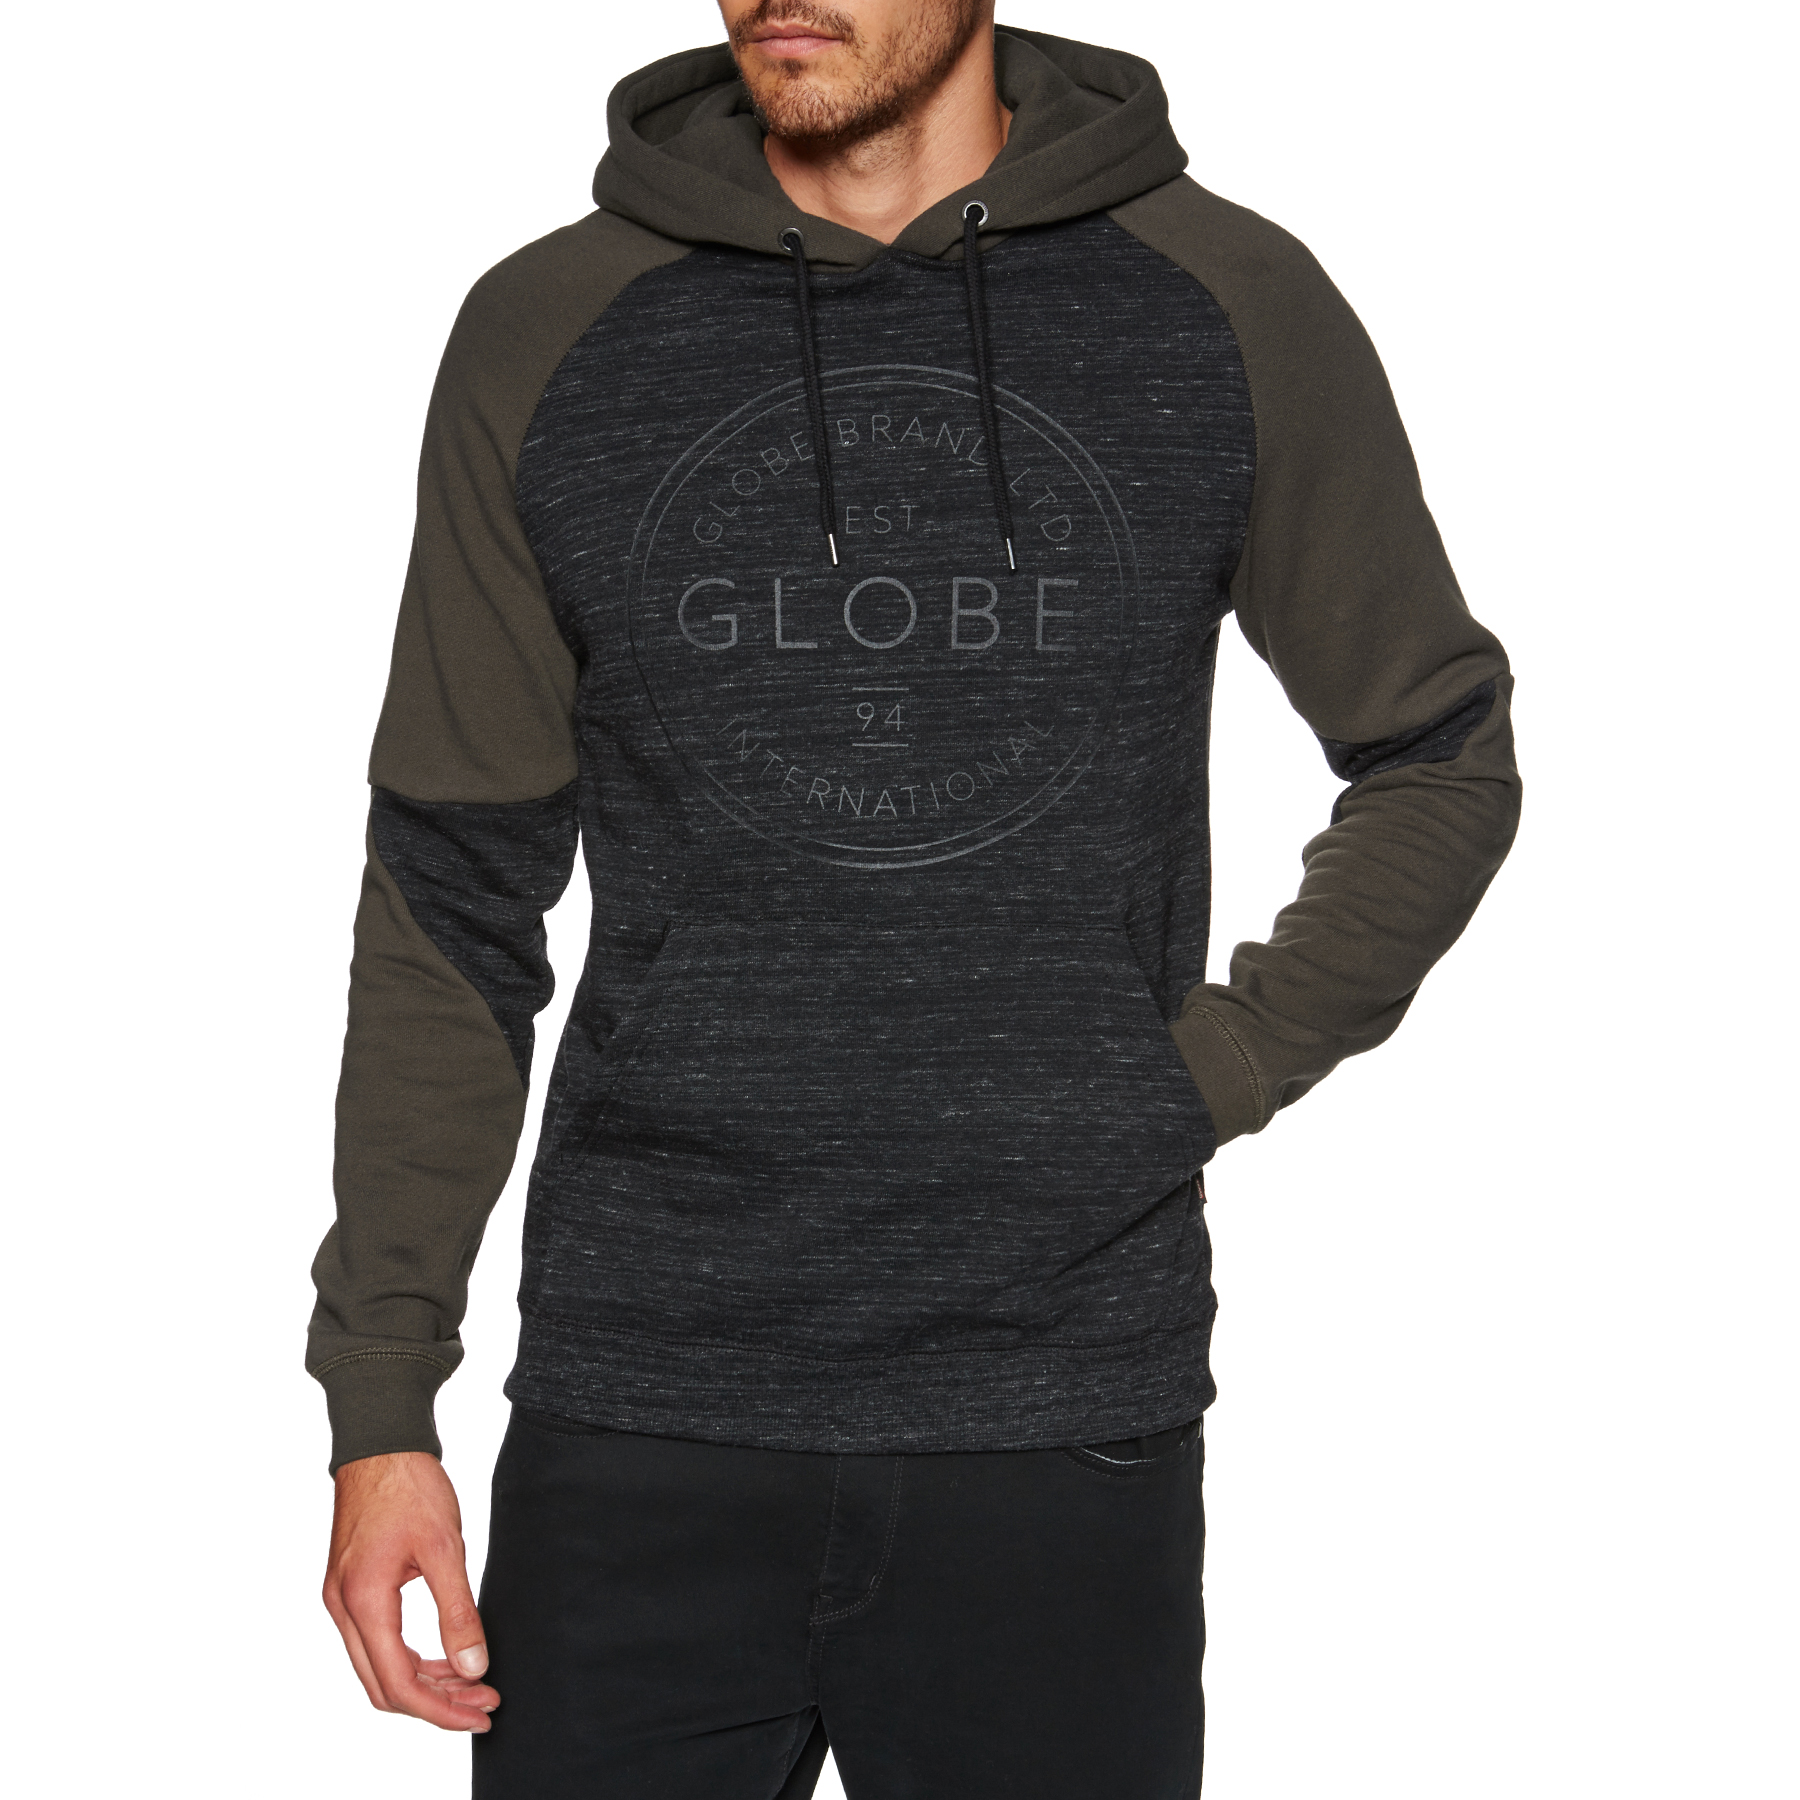 Globe Winson Pullover Hoody Free Delivery options on All